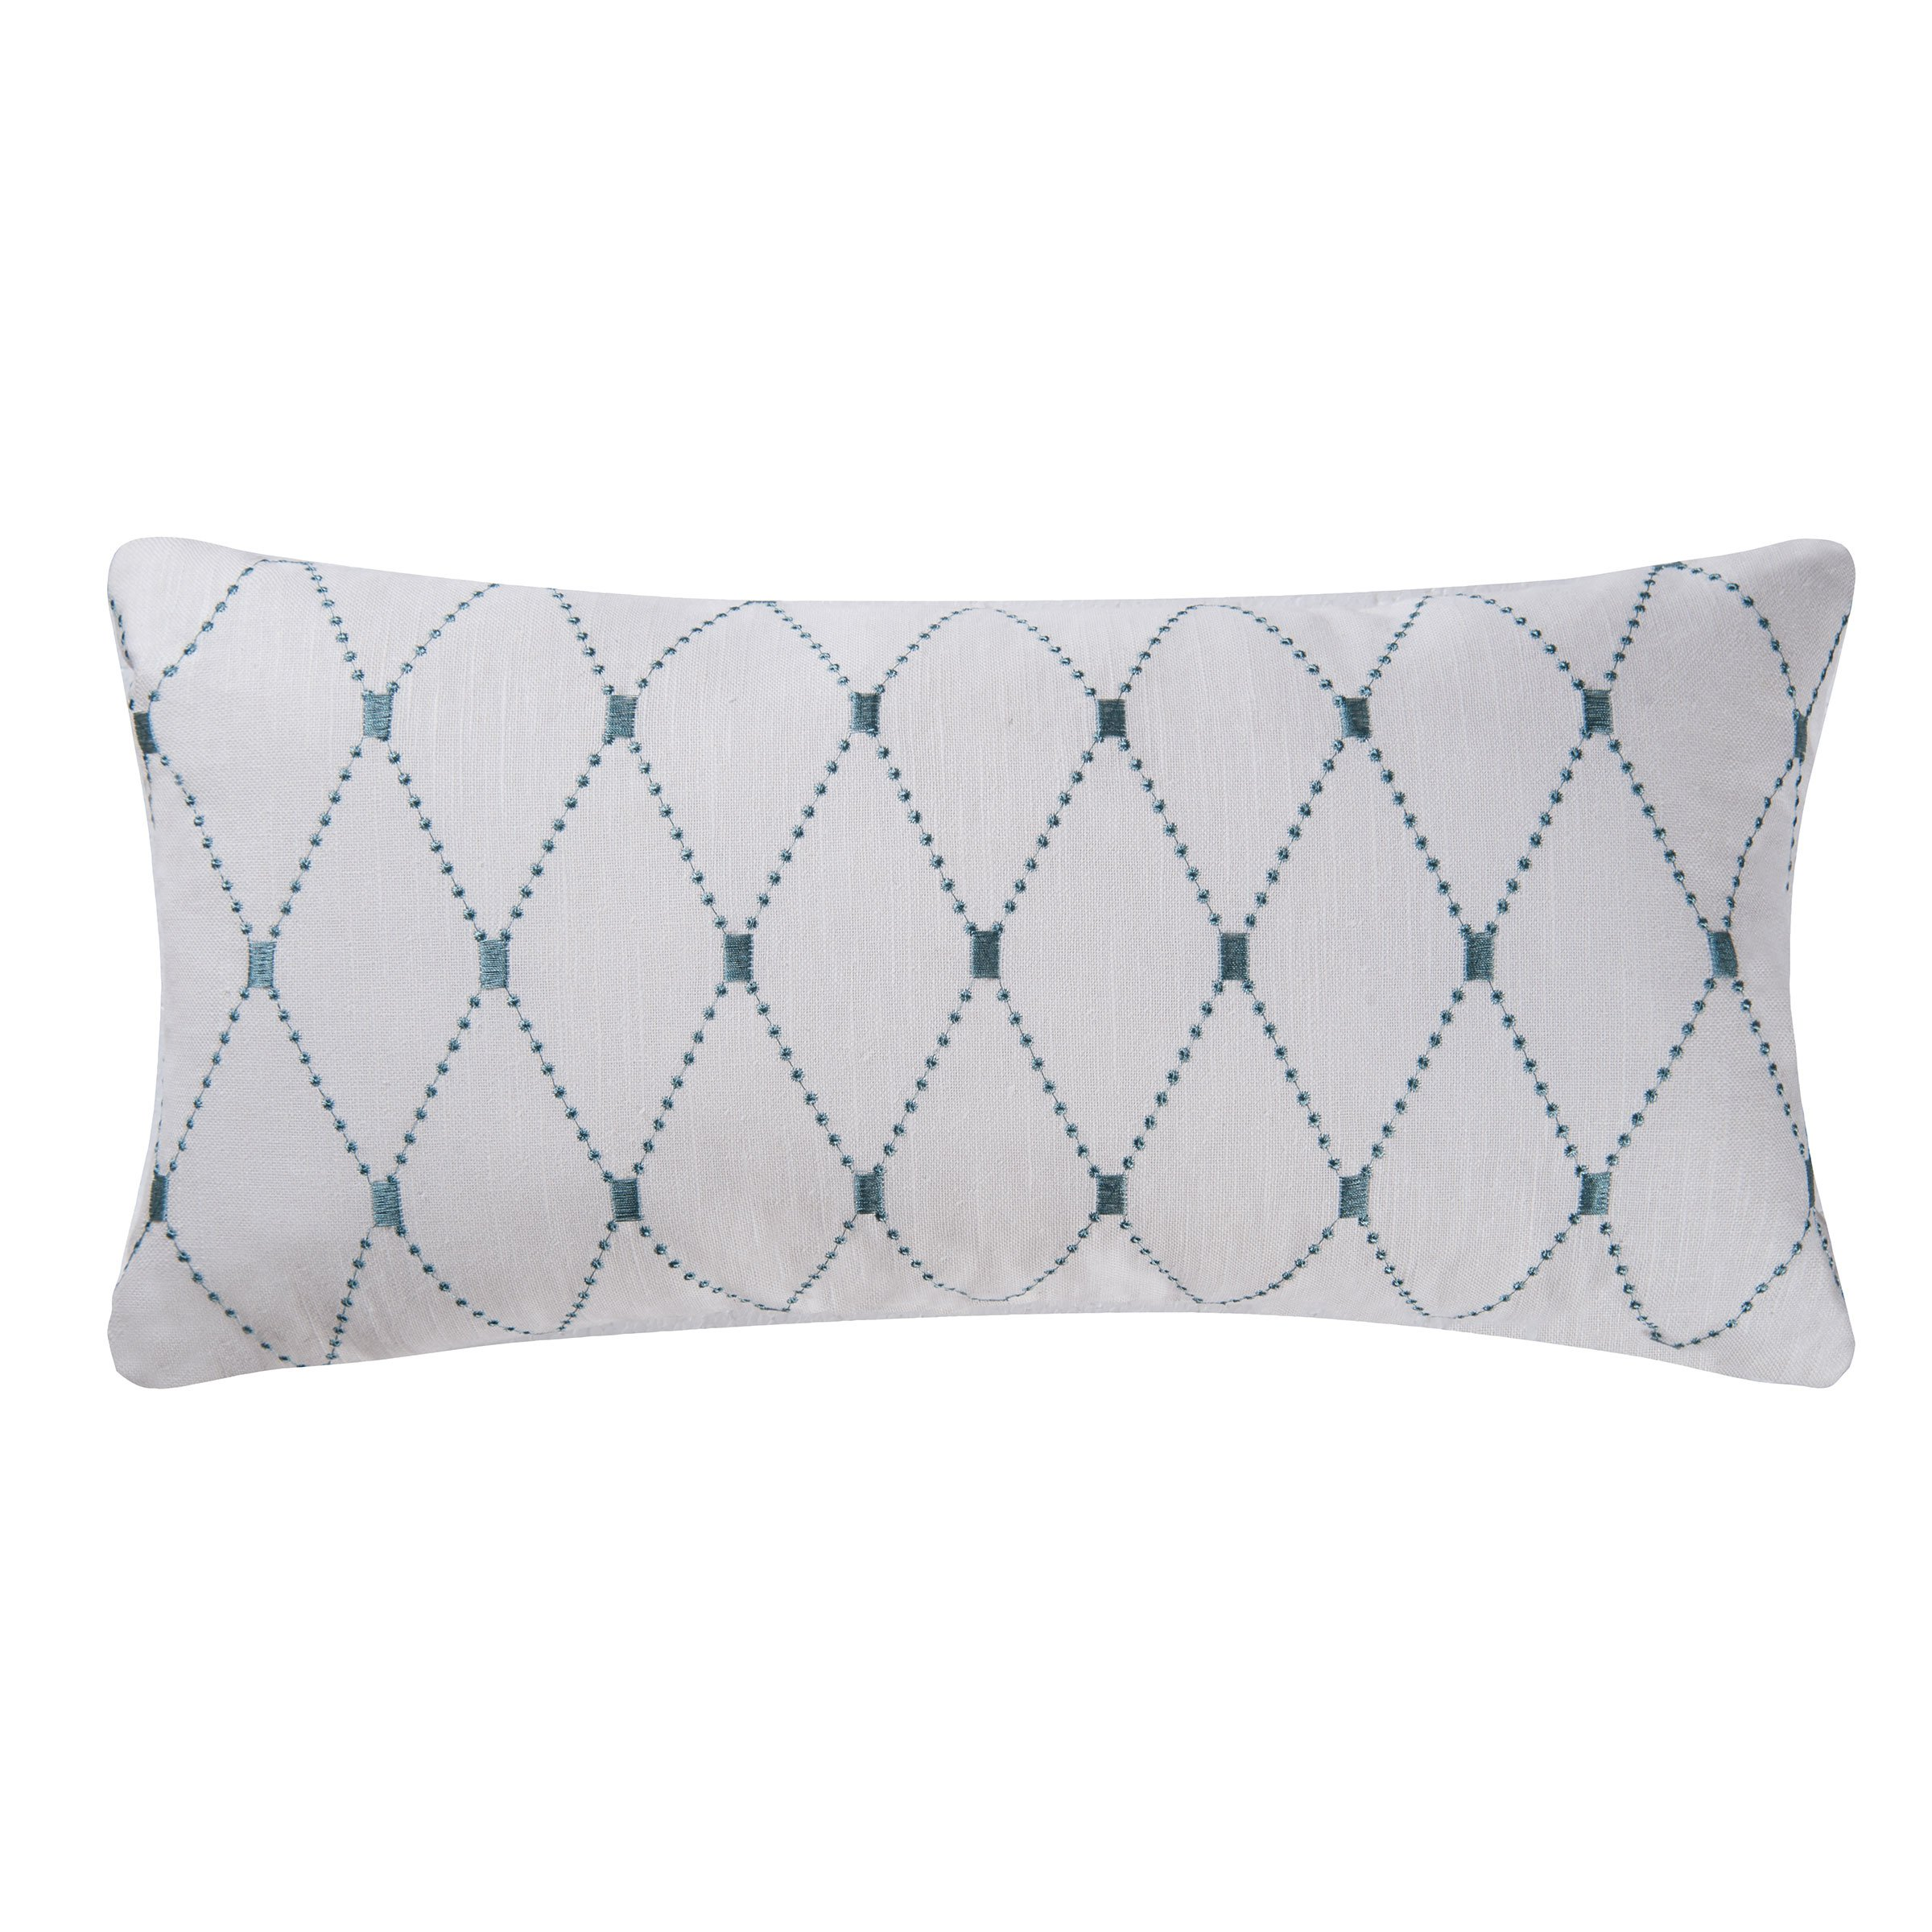 Aqua Diamond Pillow